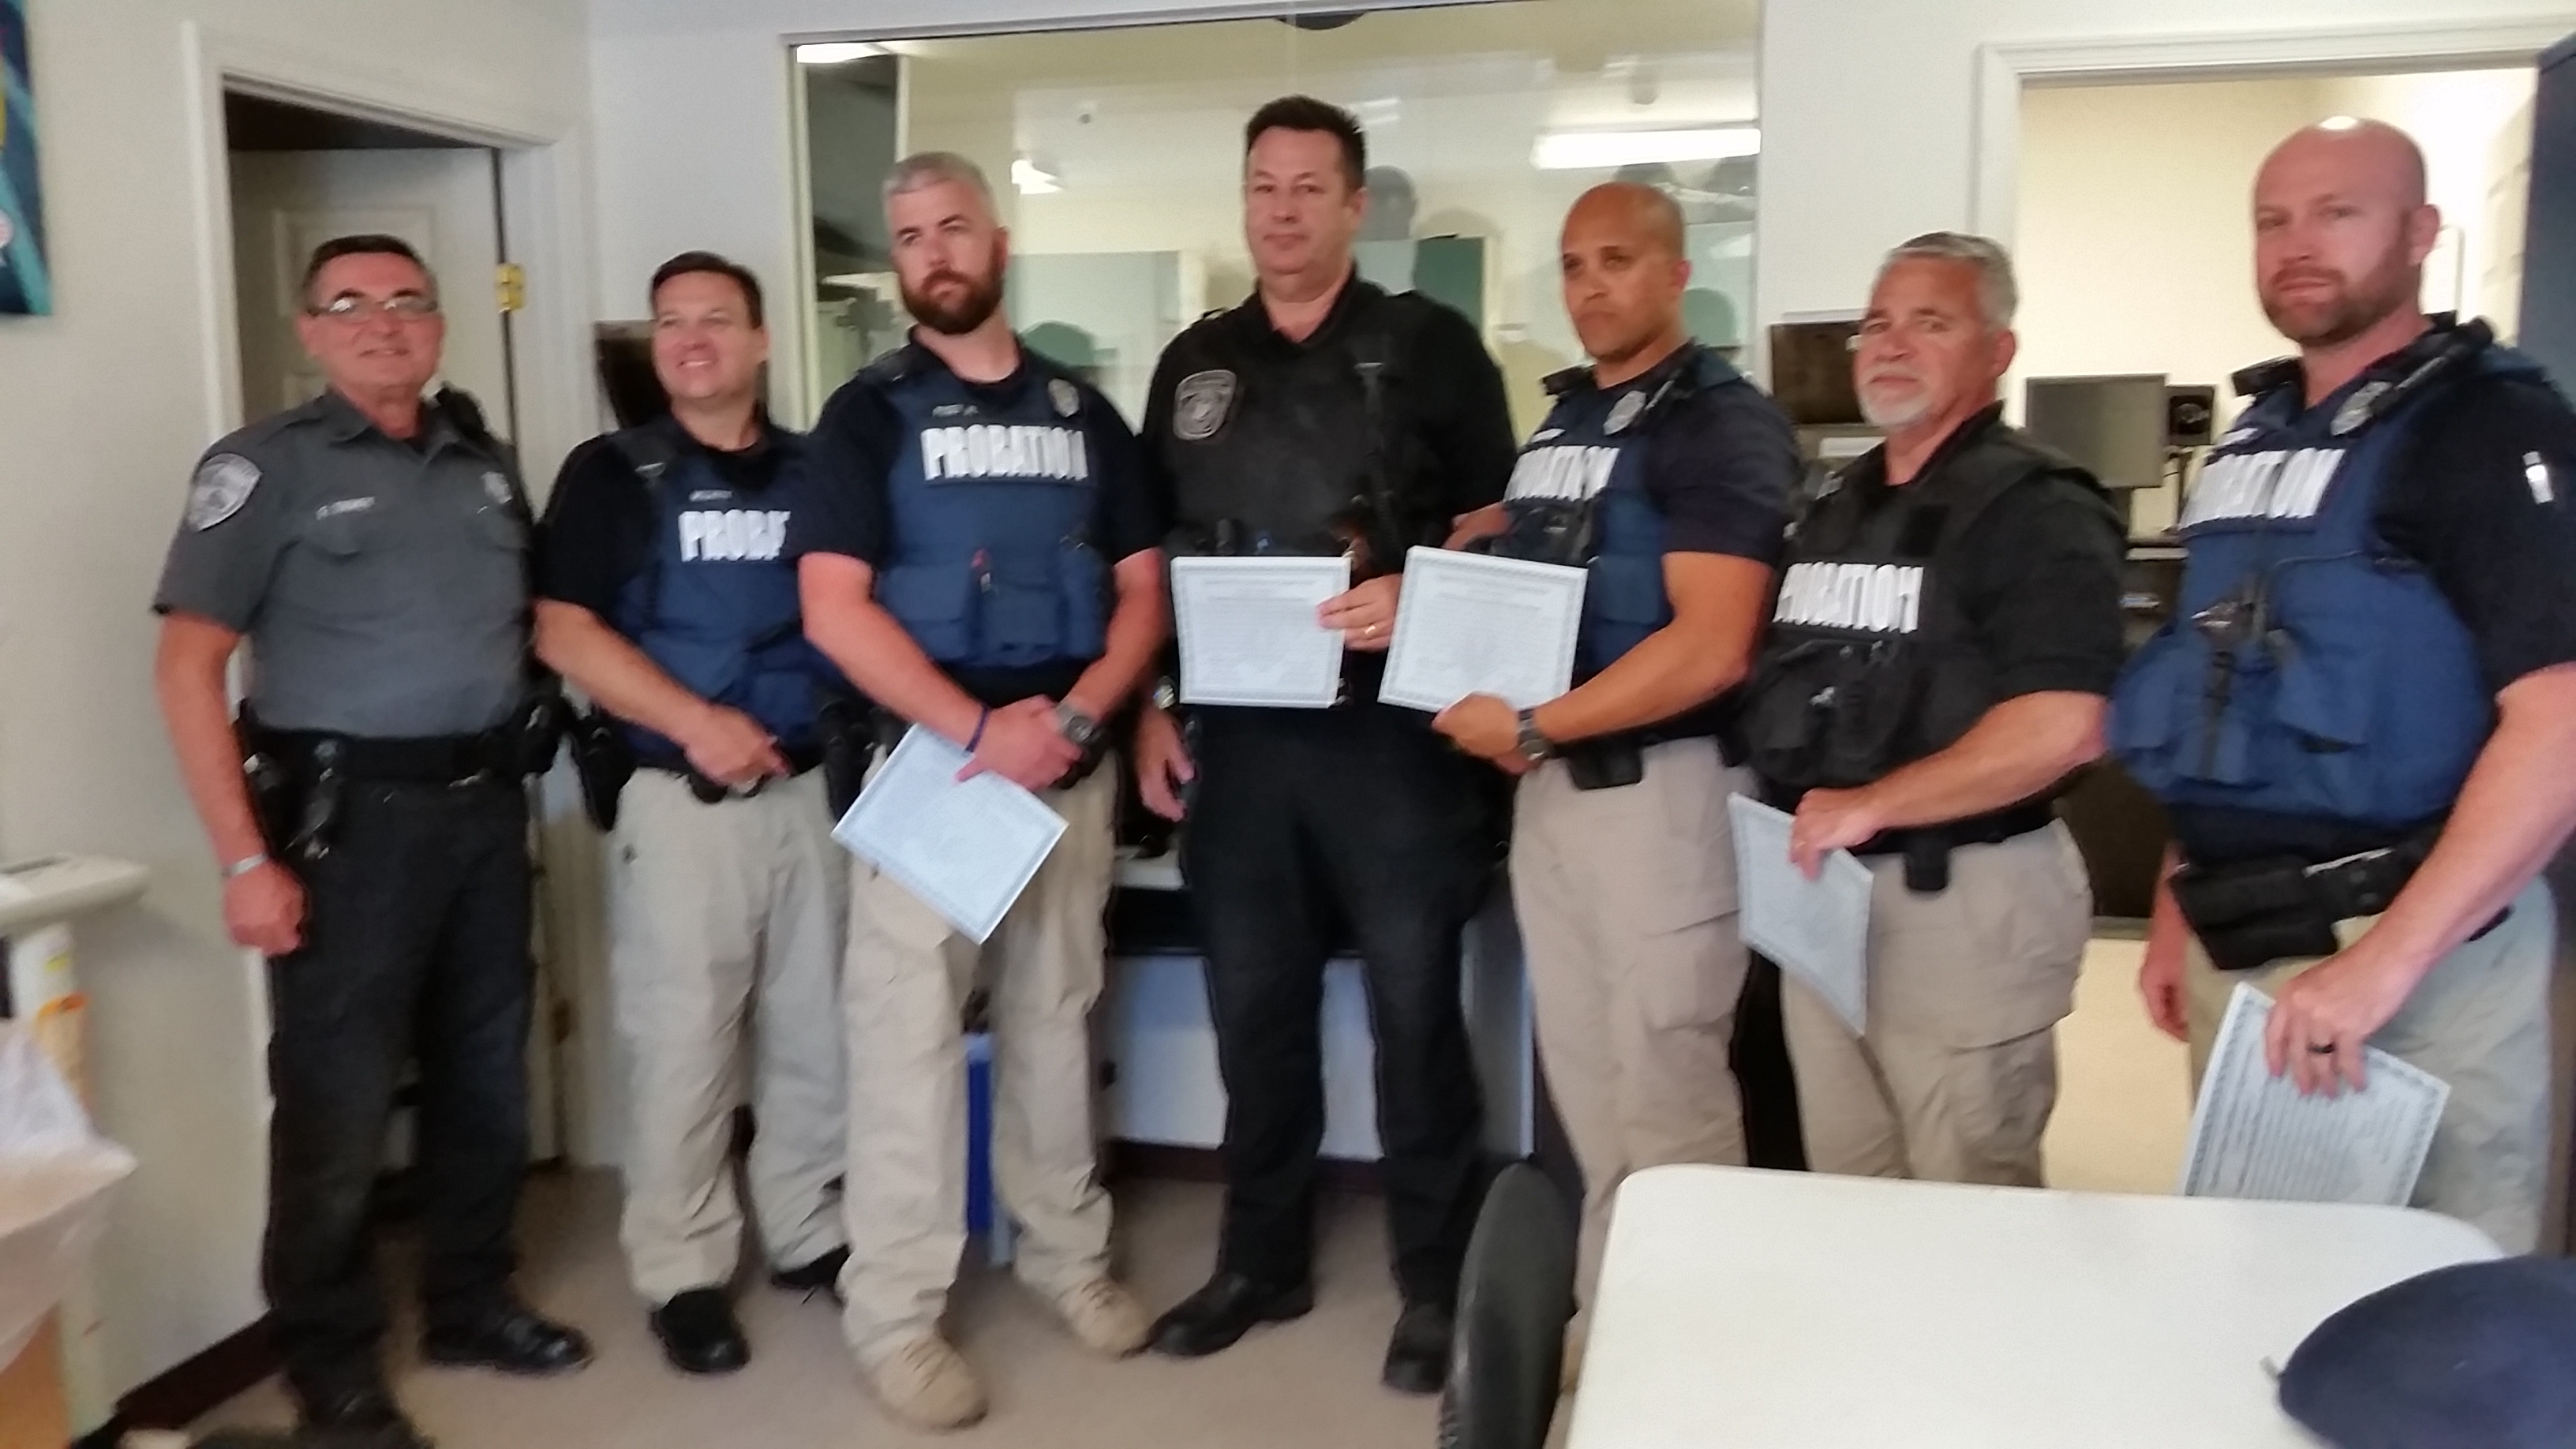 dagsboro police department awards certificates of appreciation to probation and parole officers. Black Bedroom Furniture Sets. Home Design Ideas